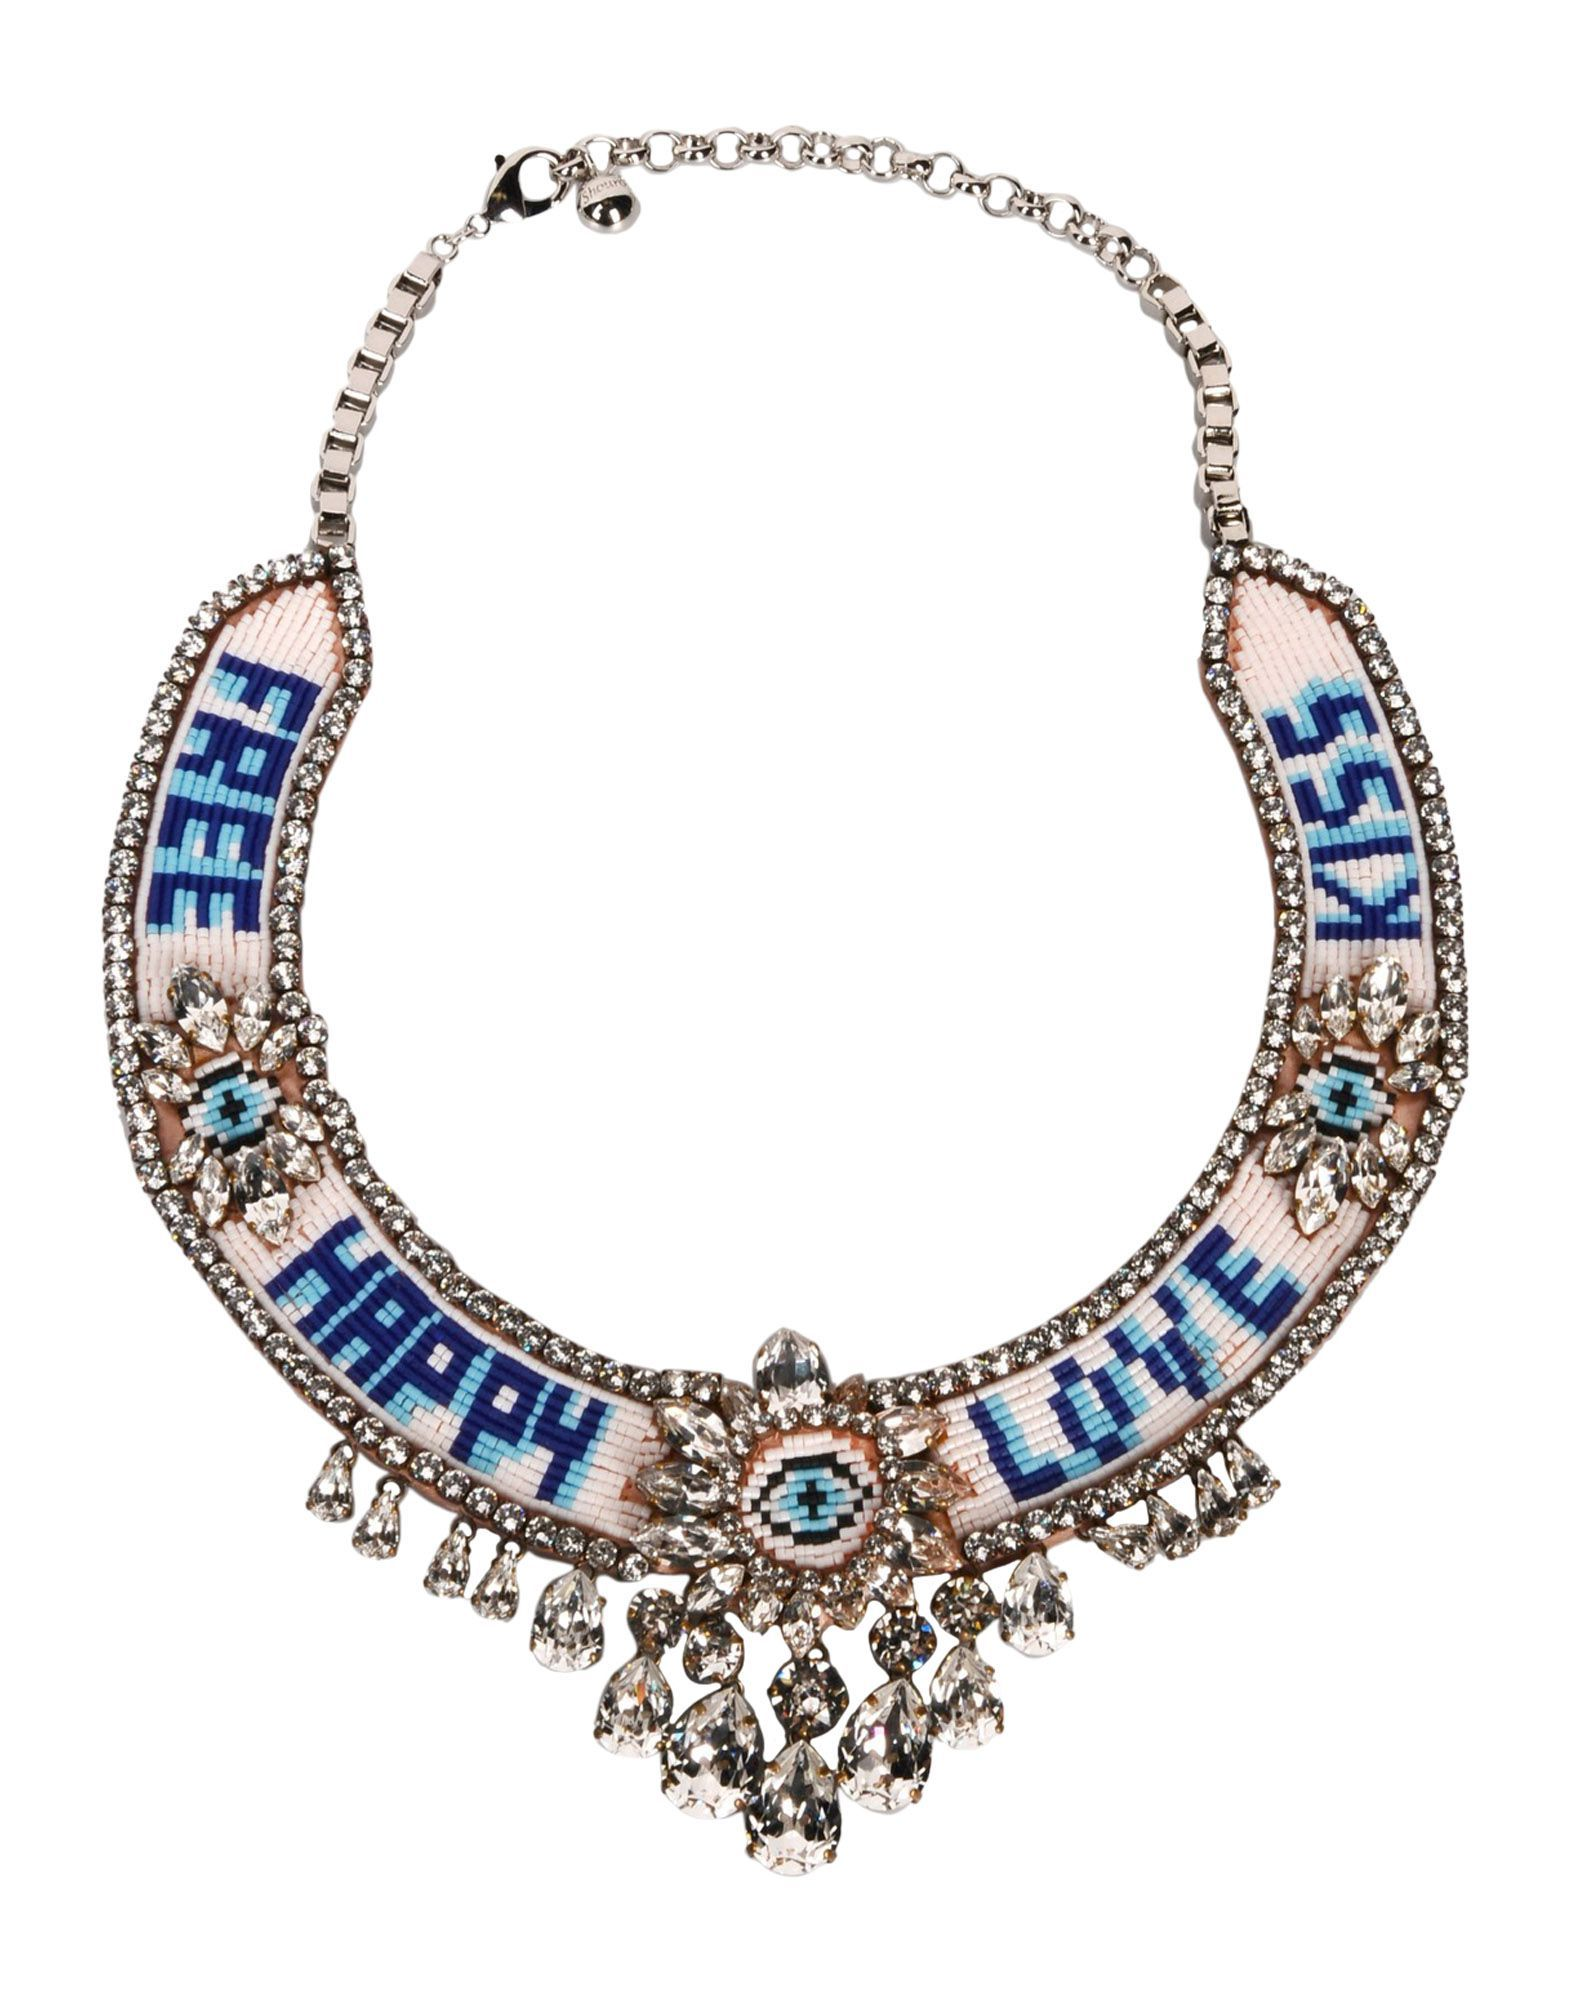 Jewelery trendy and accessories in shourouk collection advise to wear for spring in 2019